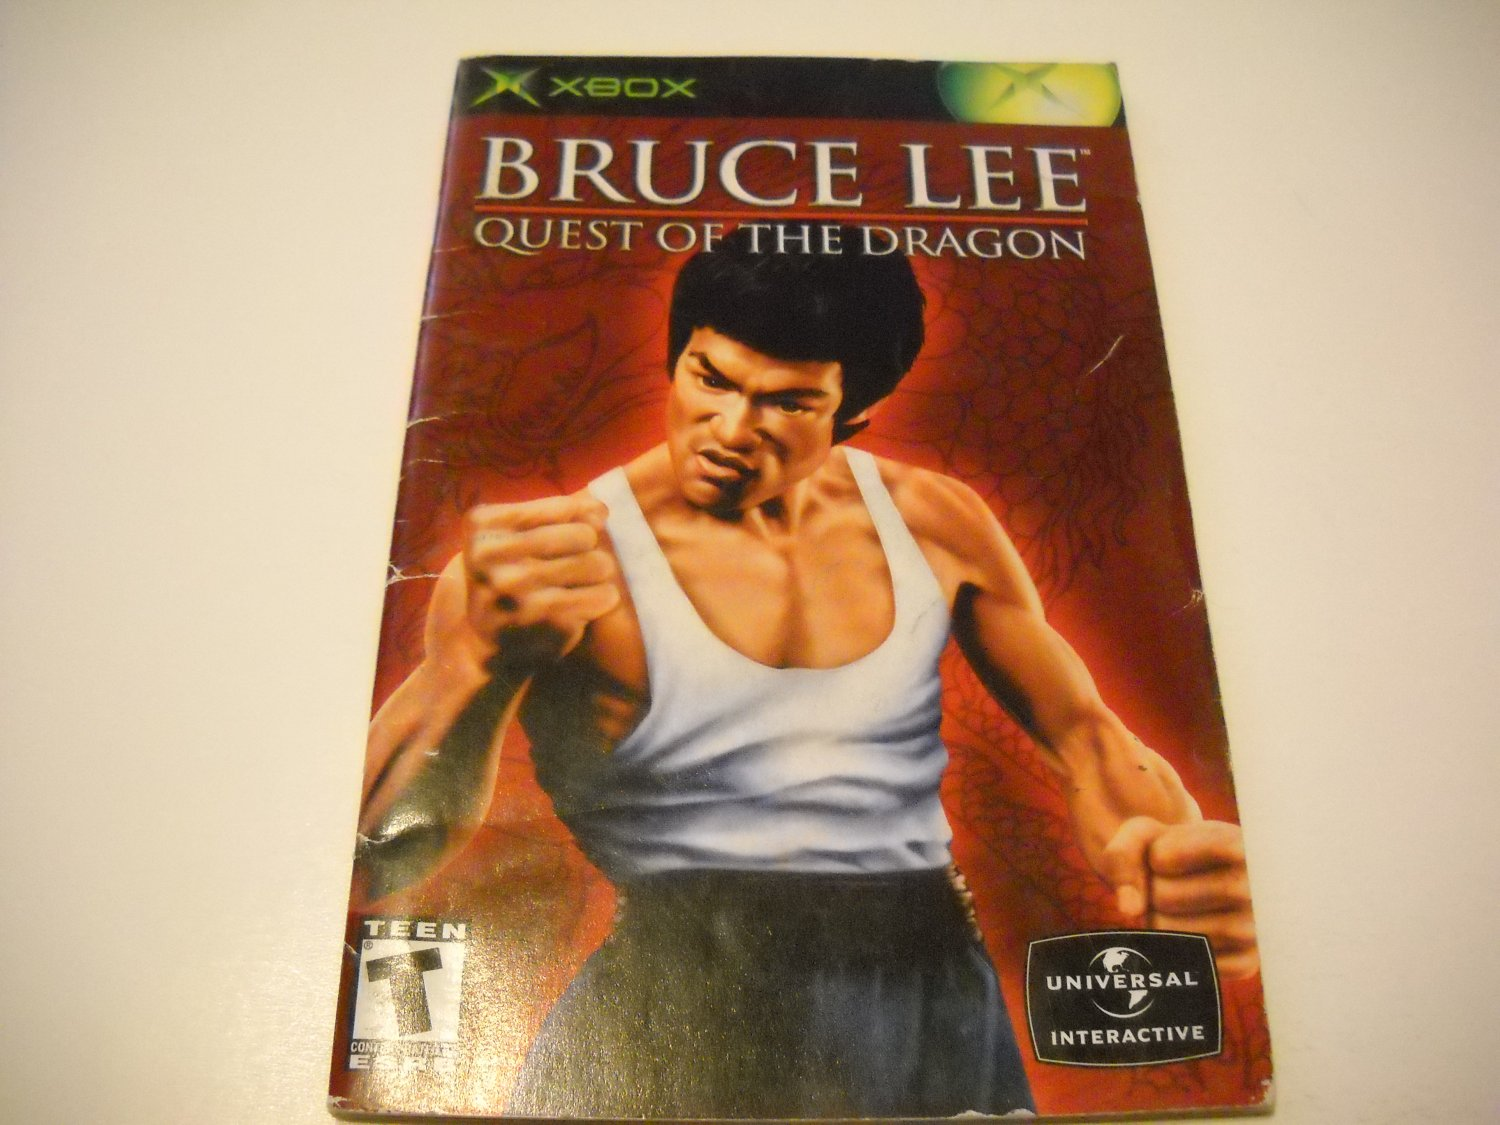 Manual ONLY ~  for Bruce Lee Quest of the Dragon   Xbox